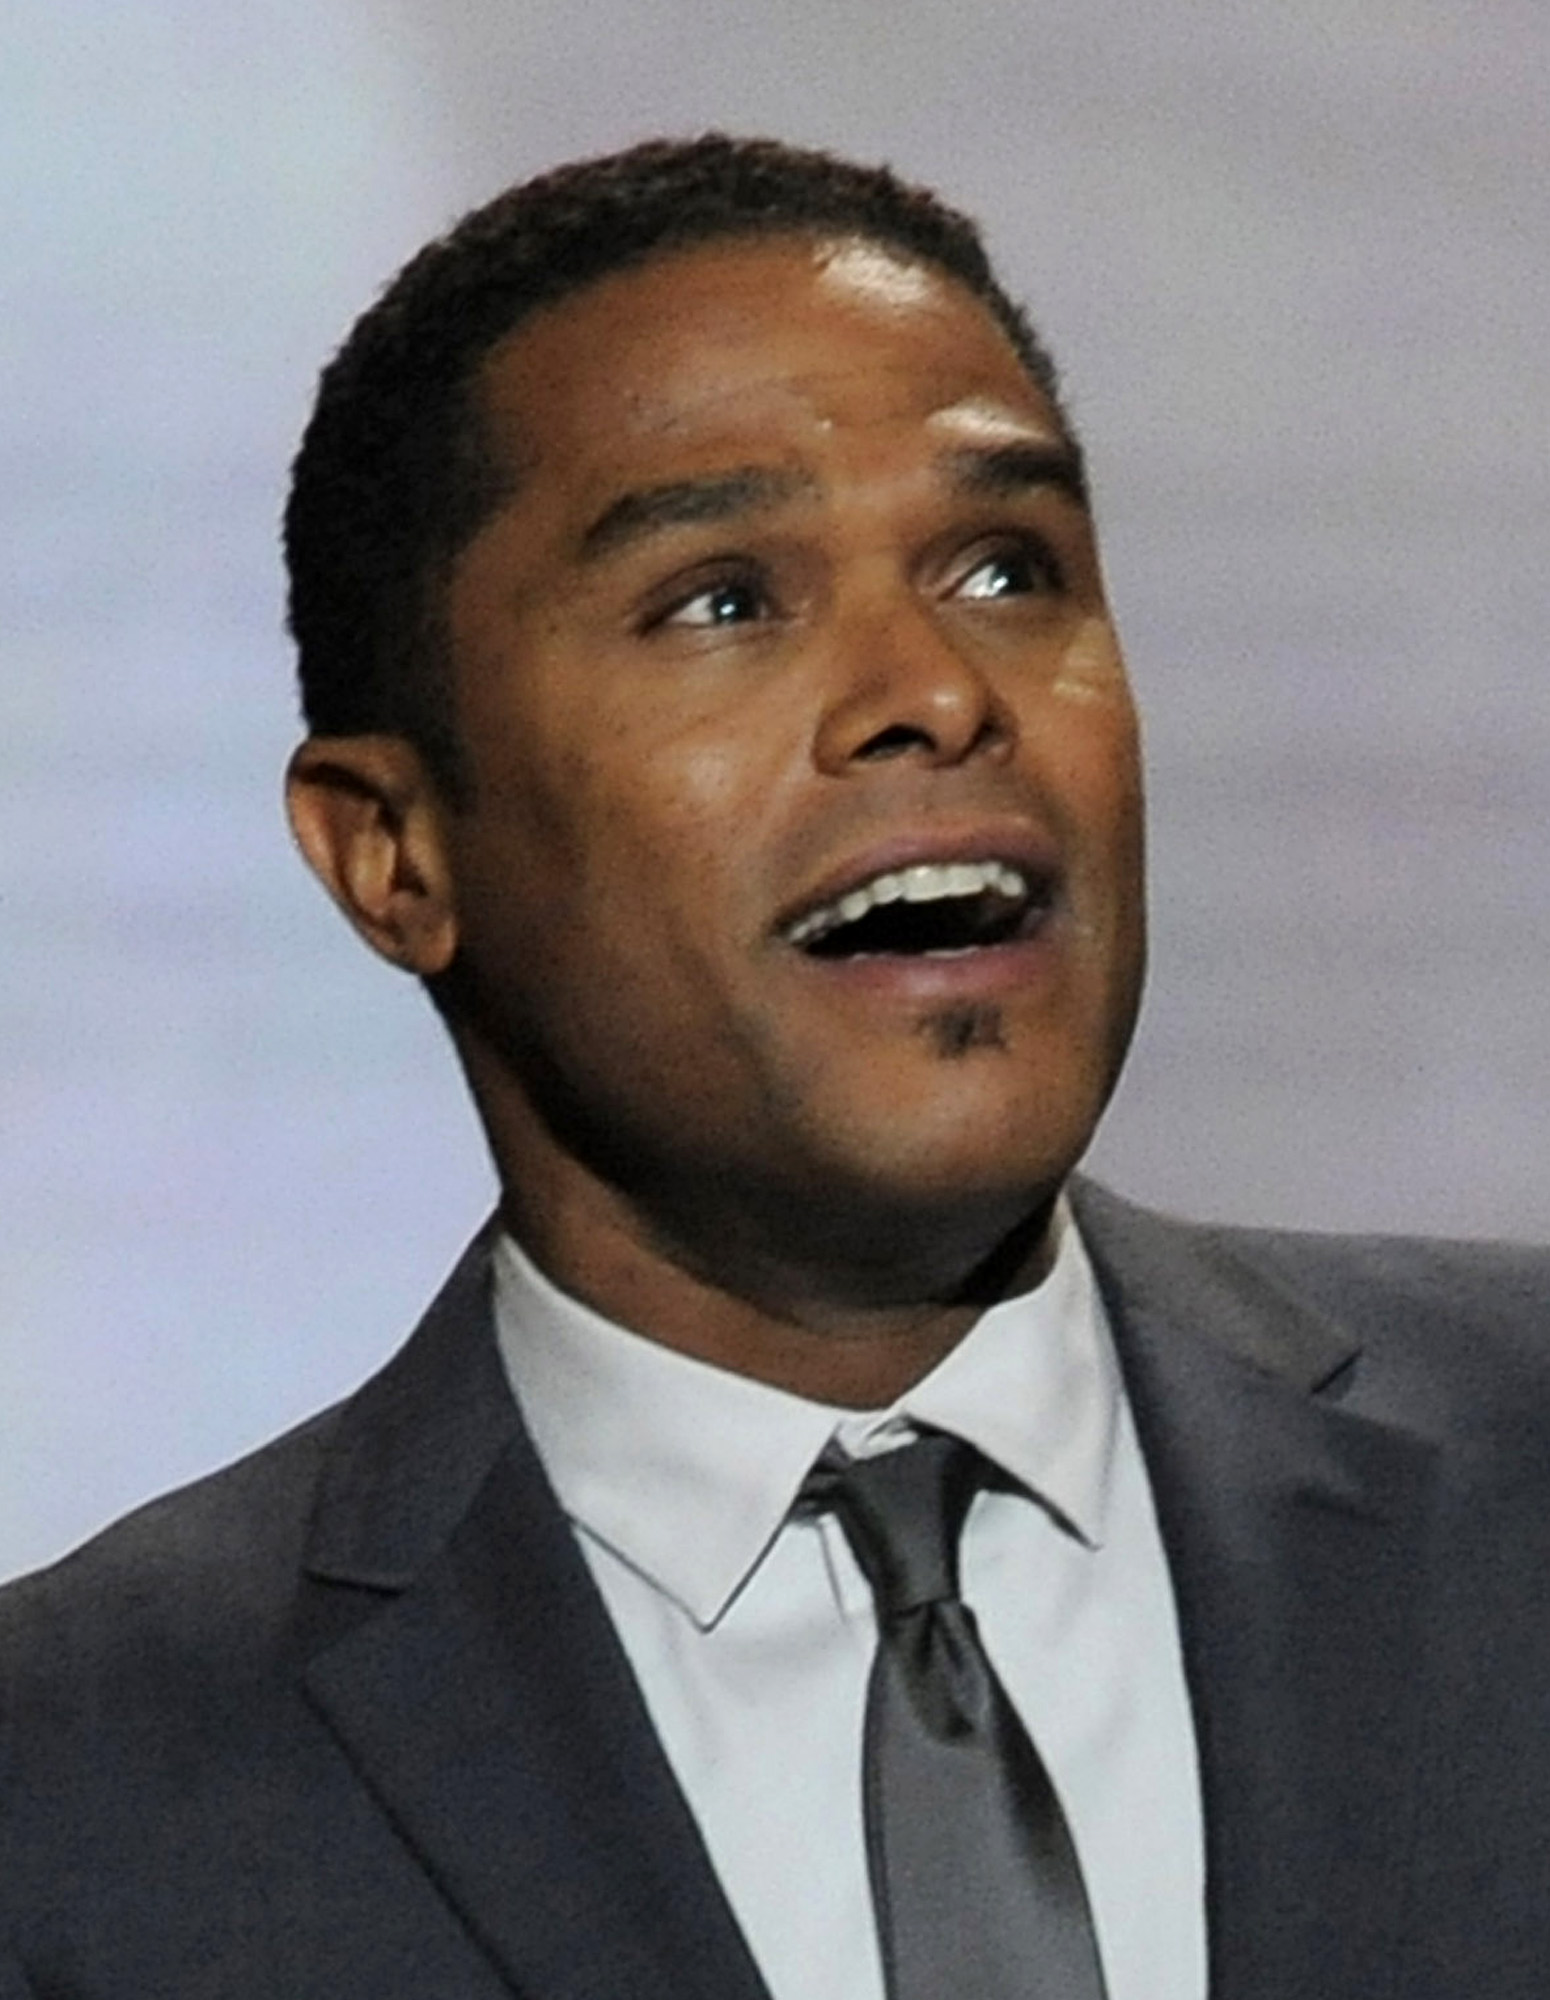 Singer Maxwell appears at the 41st NAACP Image Awards in Los Angeles, California in this Feb. 26 file photo.